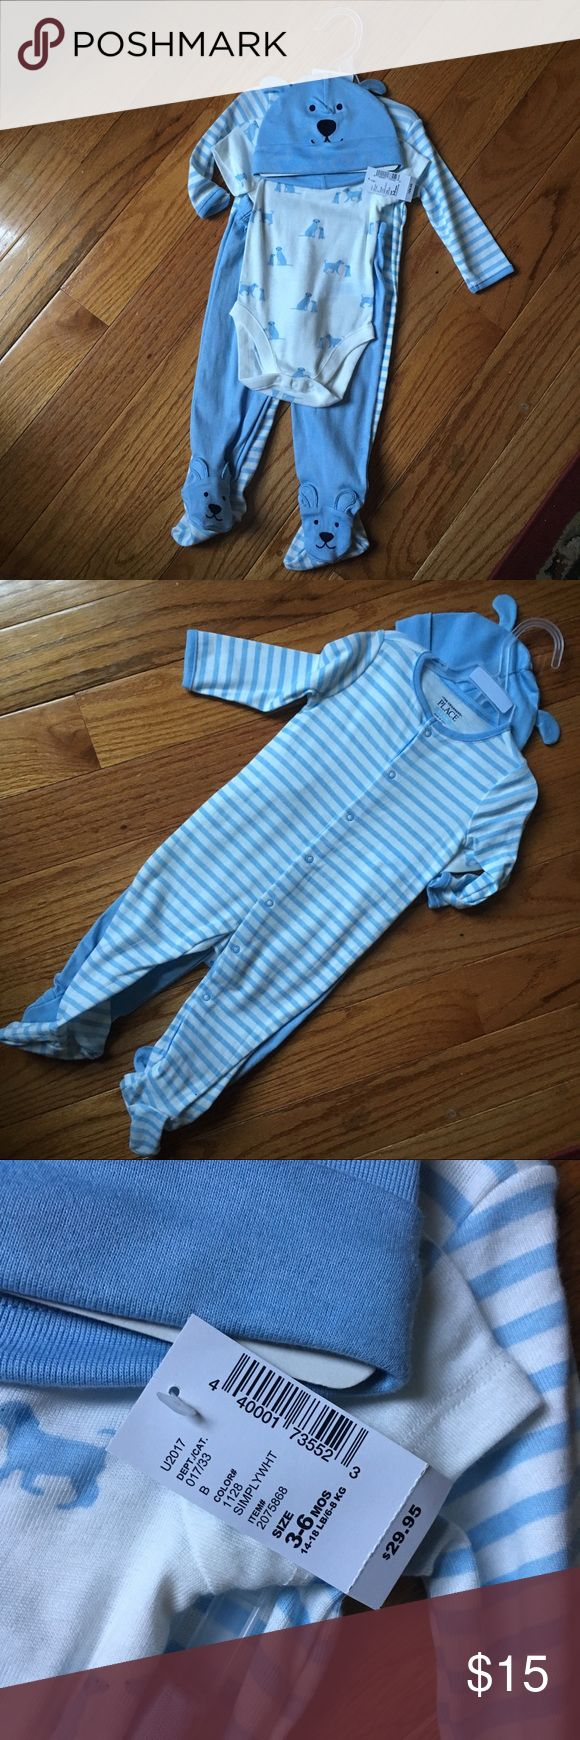 4 Piece Children's Place Set 4 Piece Baby Blue and White Children's Place Set. A white Onesie with baby blue dogs. Baby blue Footie pants with dogs as feet. Baby blue hat with dog face and ears. Baby blue and white striped snap up Footie. Children's Place Matching Sets